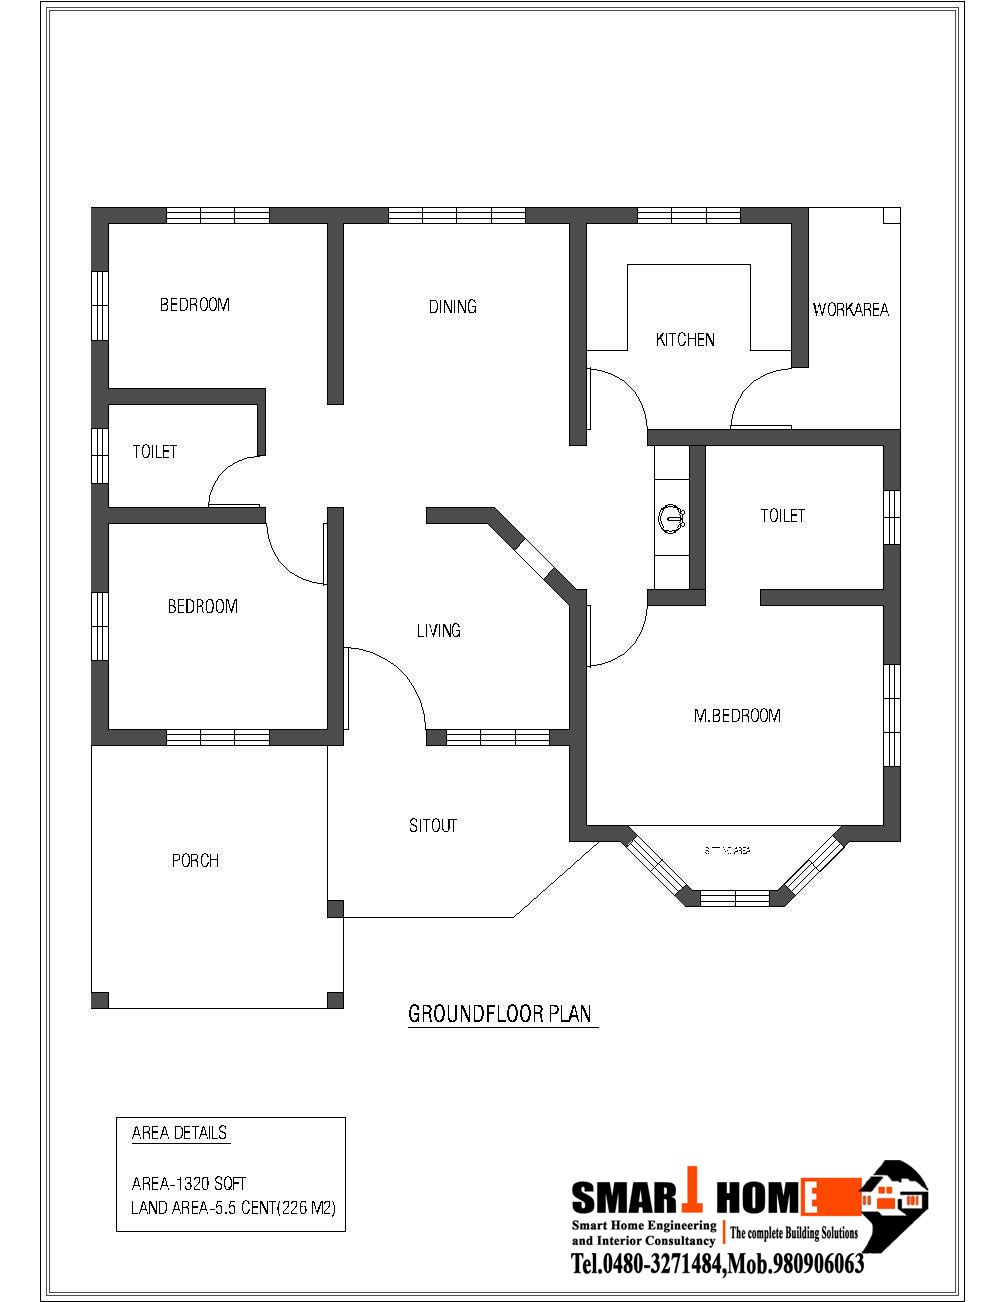 Bedroom Floor Plan Designer Bedroom Bath House Plans Family Home Plans Home Plans Modular Home